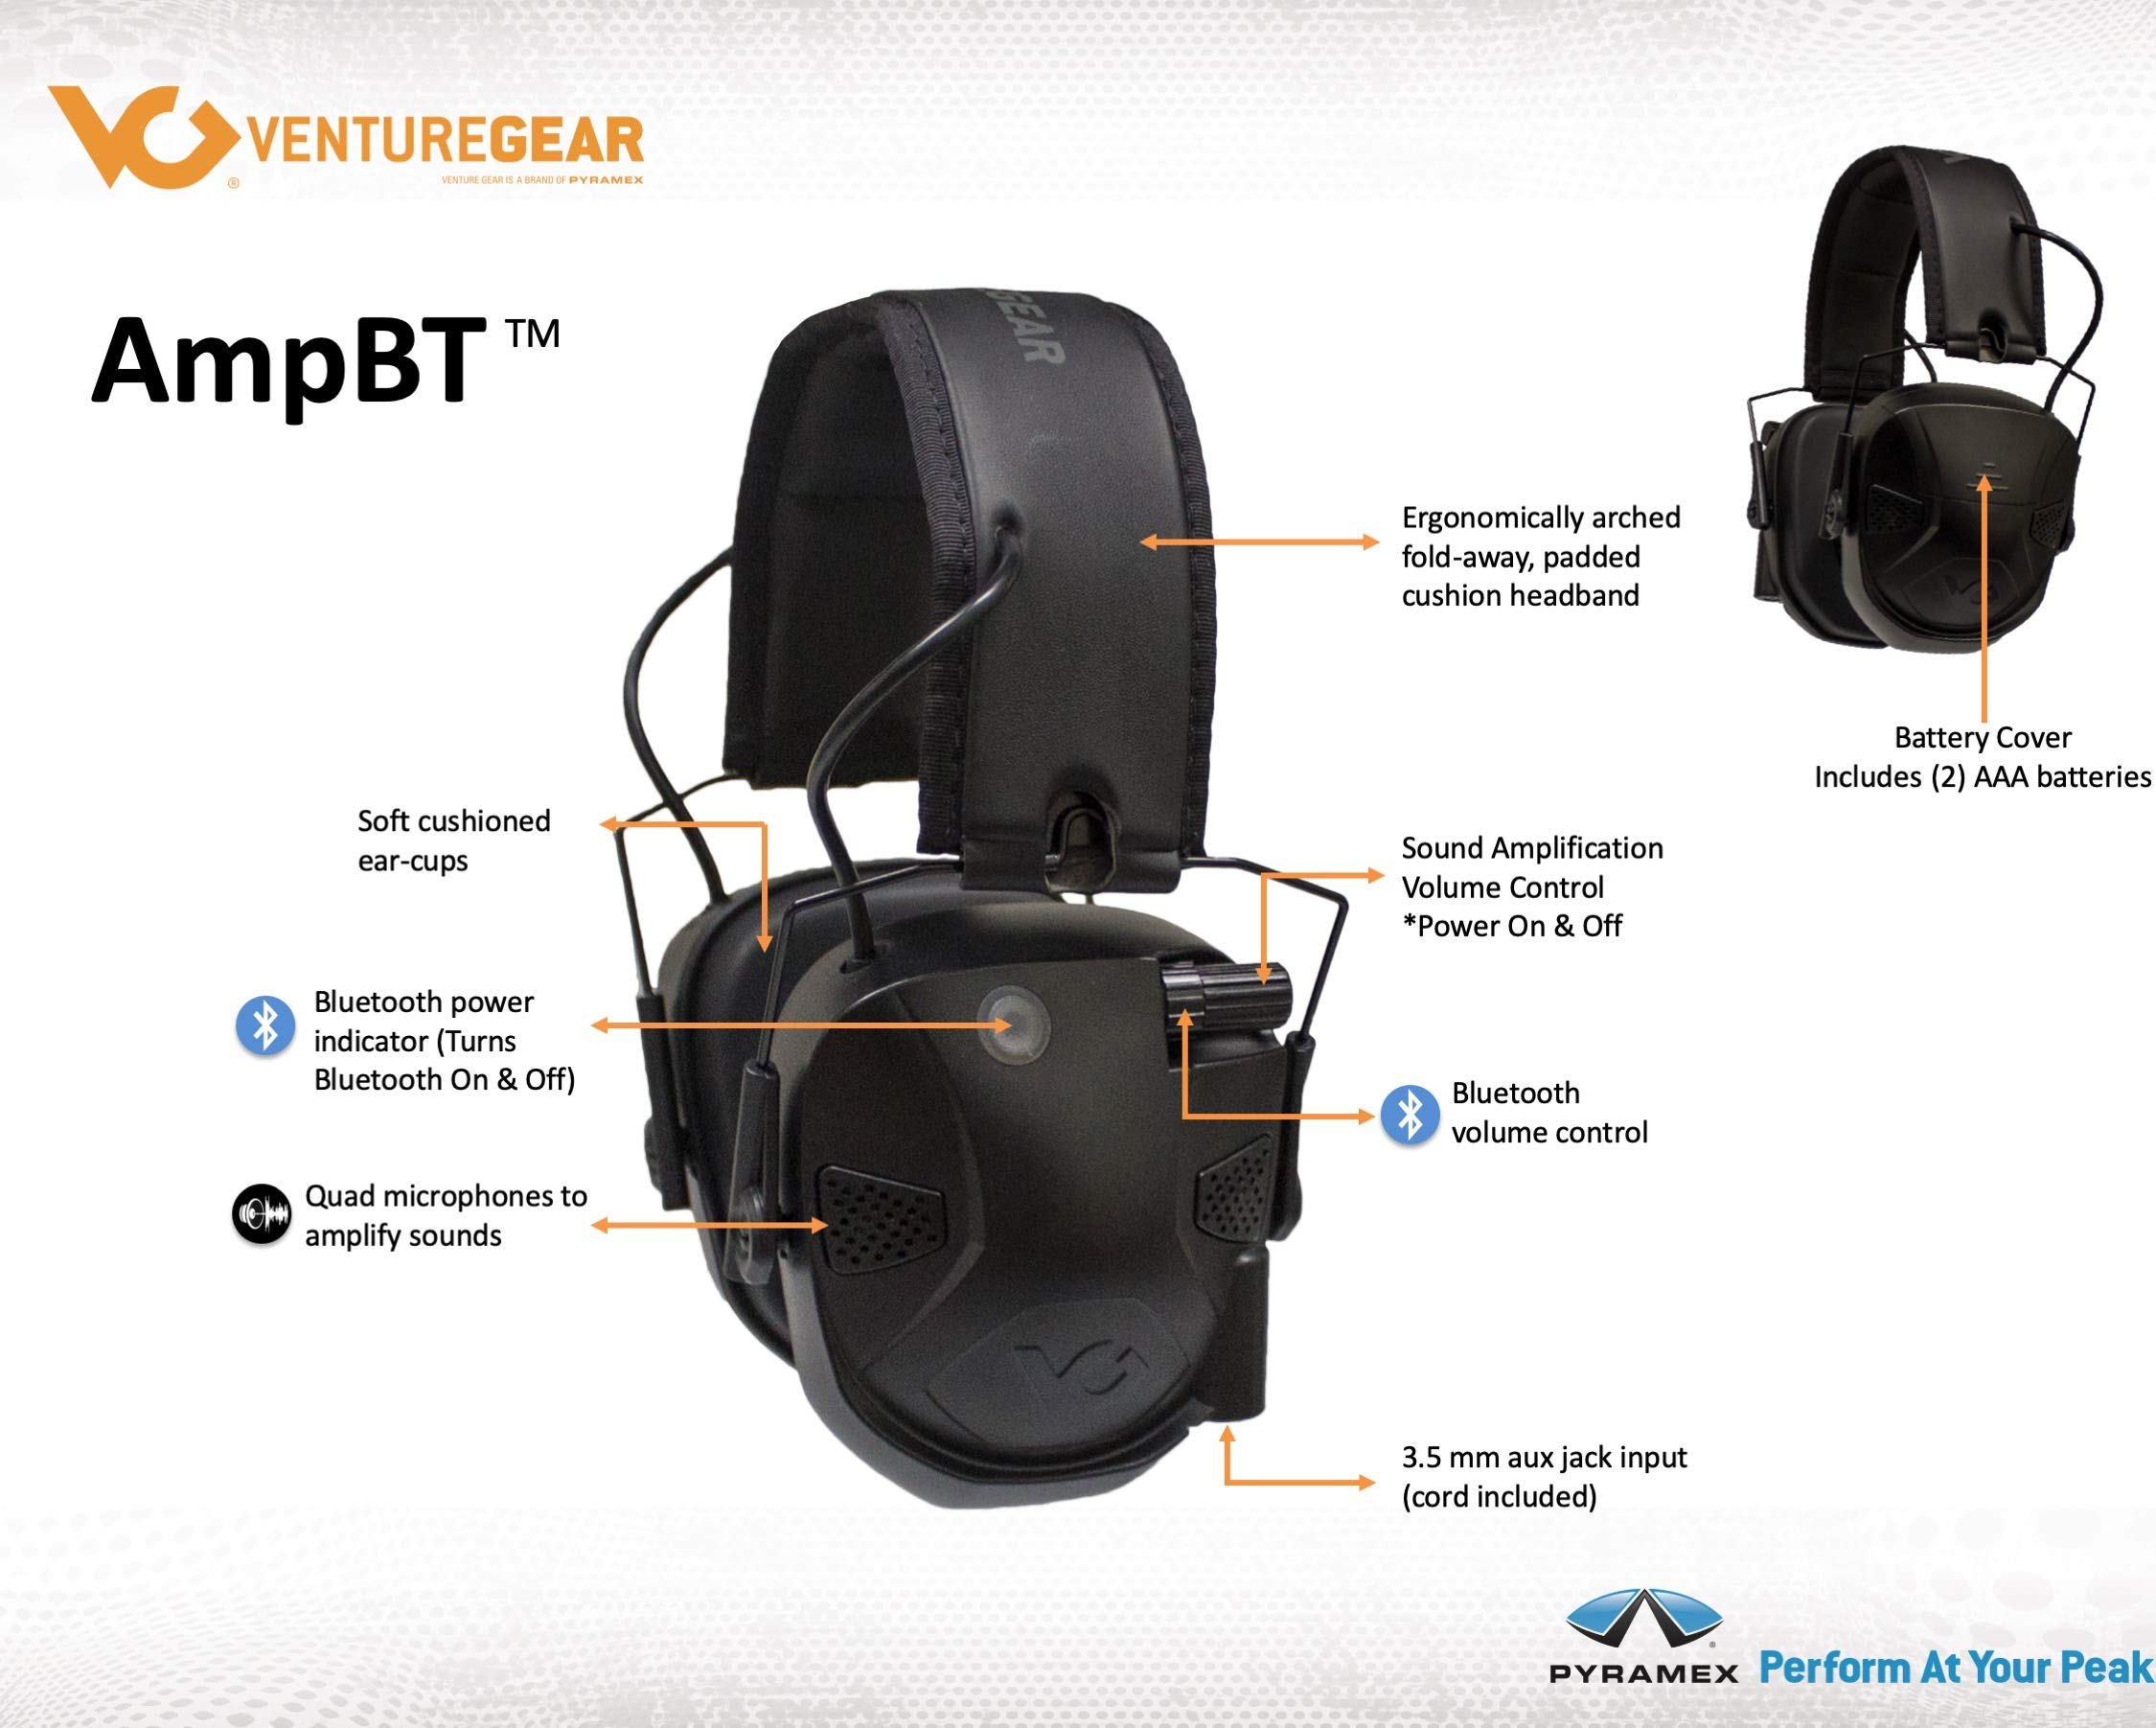 Venture Gear Amp BT Electronic Bluetooth Hearing Protection Earmuffs by Pyramex Safety (Image #5)